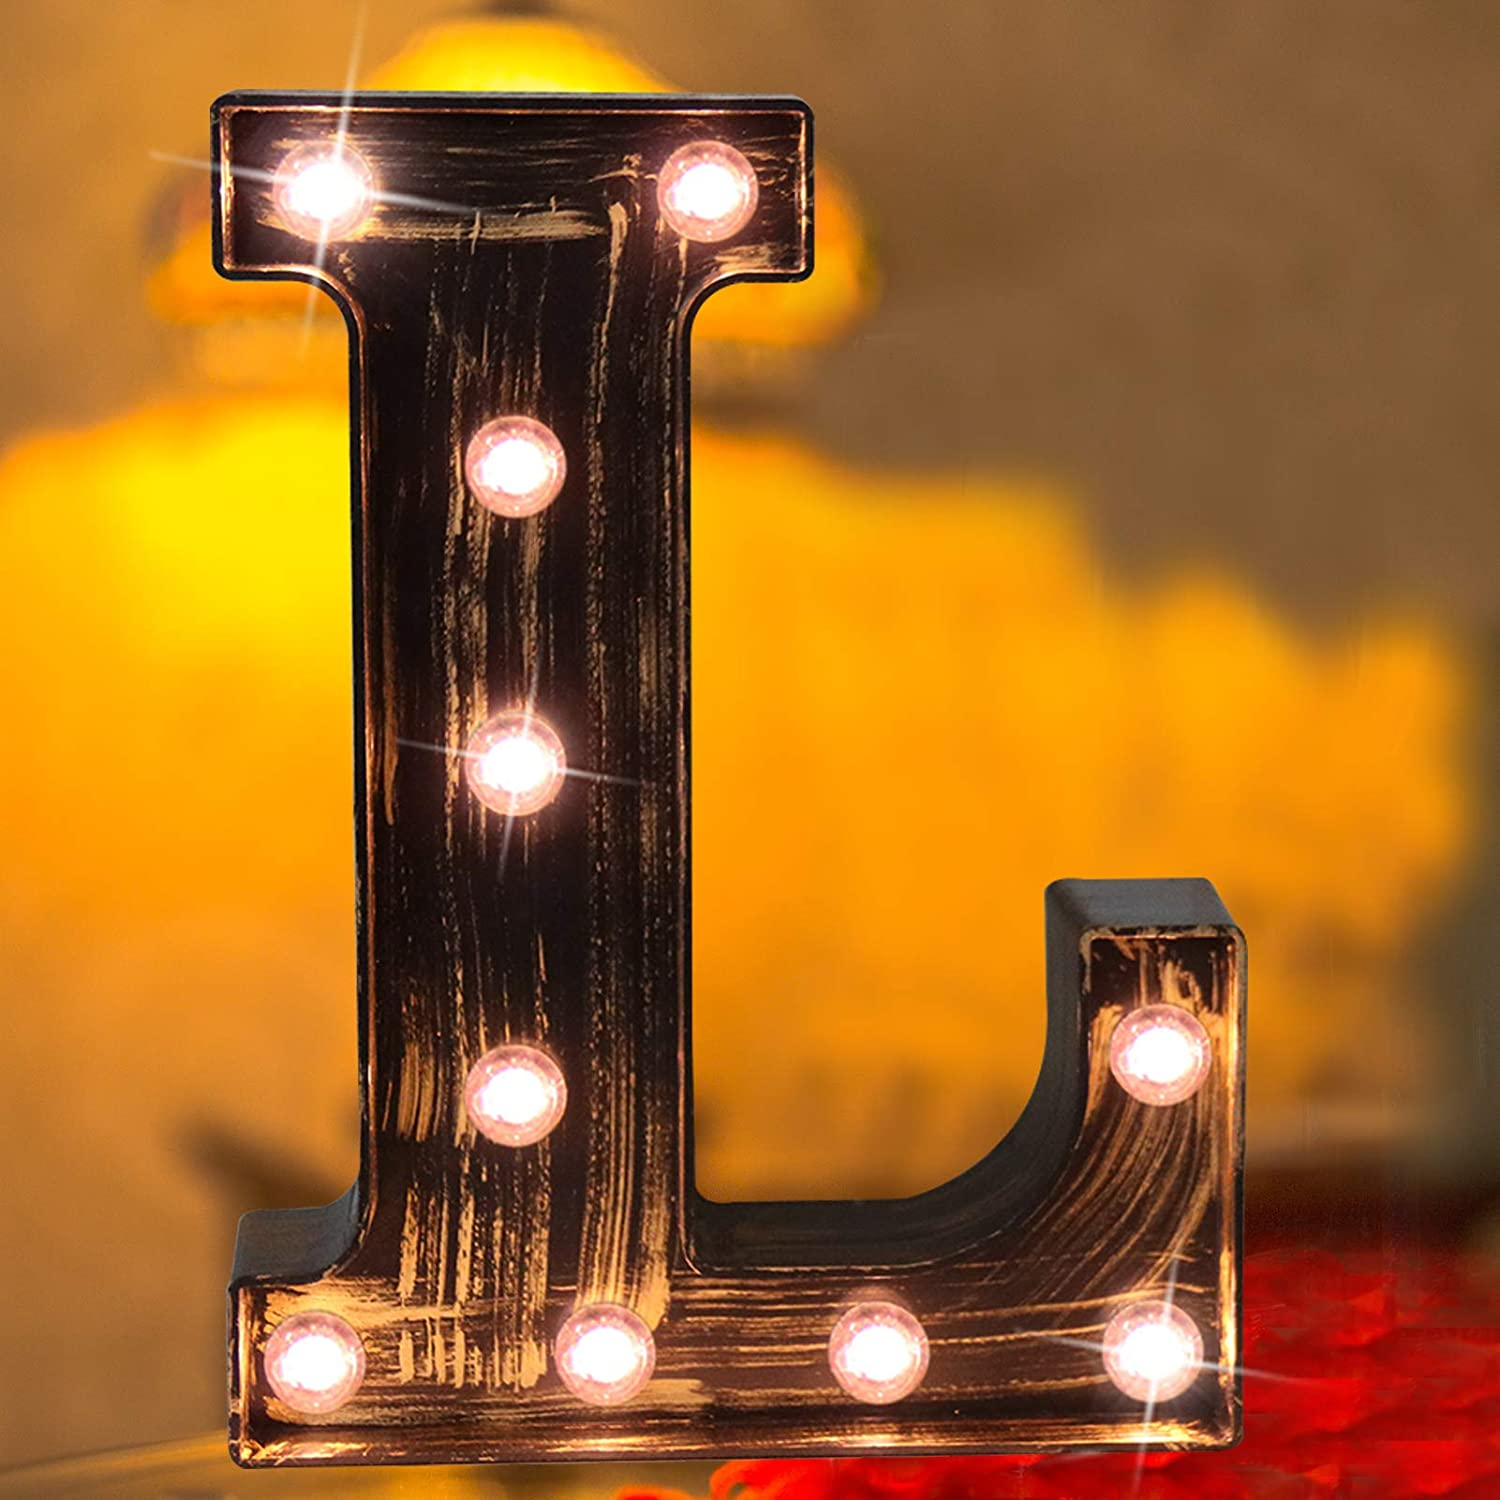 Elnsivo Vintage LED Marquee Letter Lights Light Up Industrial 26 Alphabet Name Signs Bar Cafe Initials Decor for Birthday Party Christmas Wedding Events(Letter L)